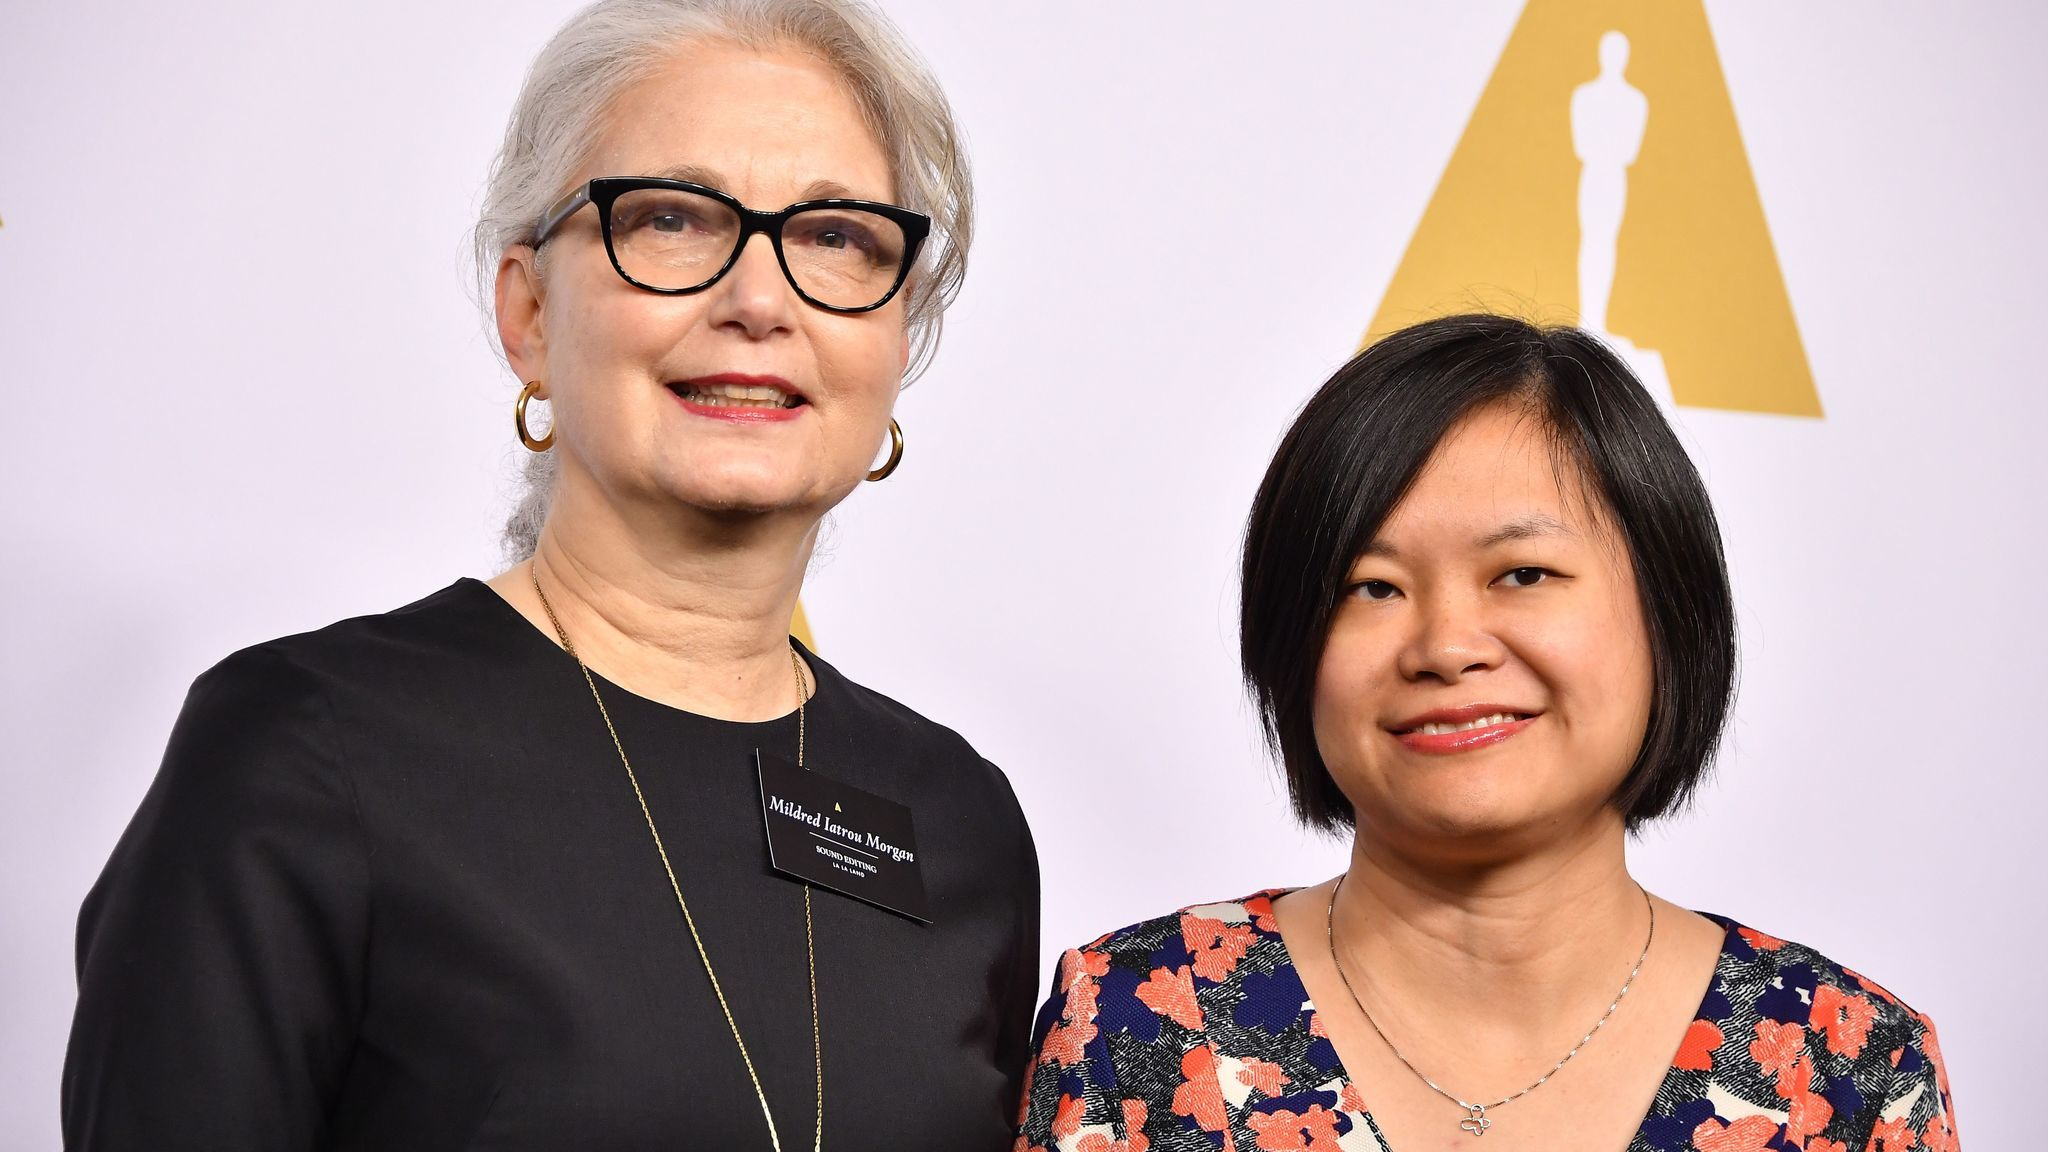 Ai-Ling Lee, left, and Mildred Iatrow Morgan, seen at the 89th Annual Academy Awards Nominee Luncheon, are the first all-woman sound editing team to be nominated for an Oscar.